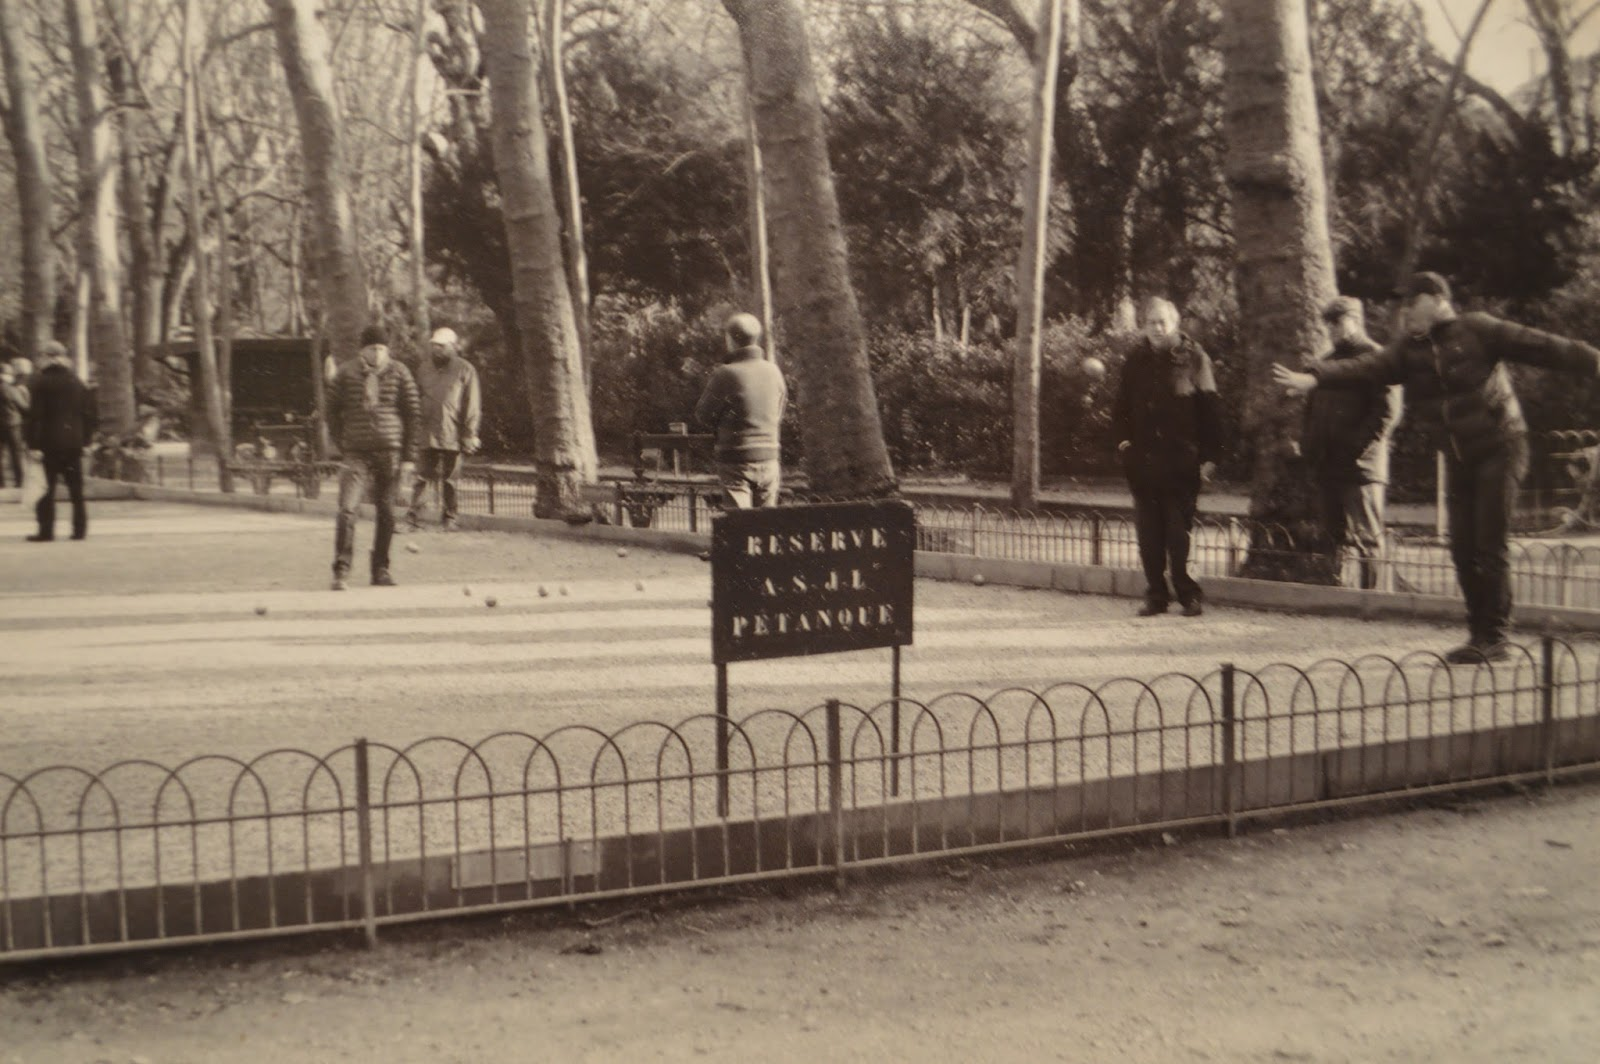 Photography: Playing petanque in Luxembourg gardens, Paris